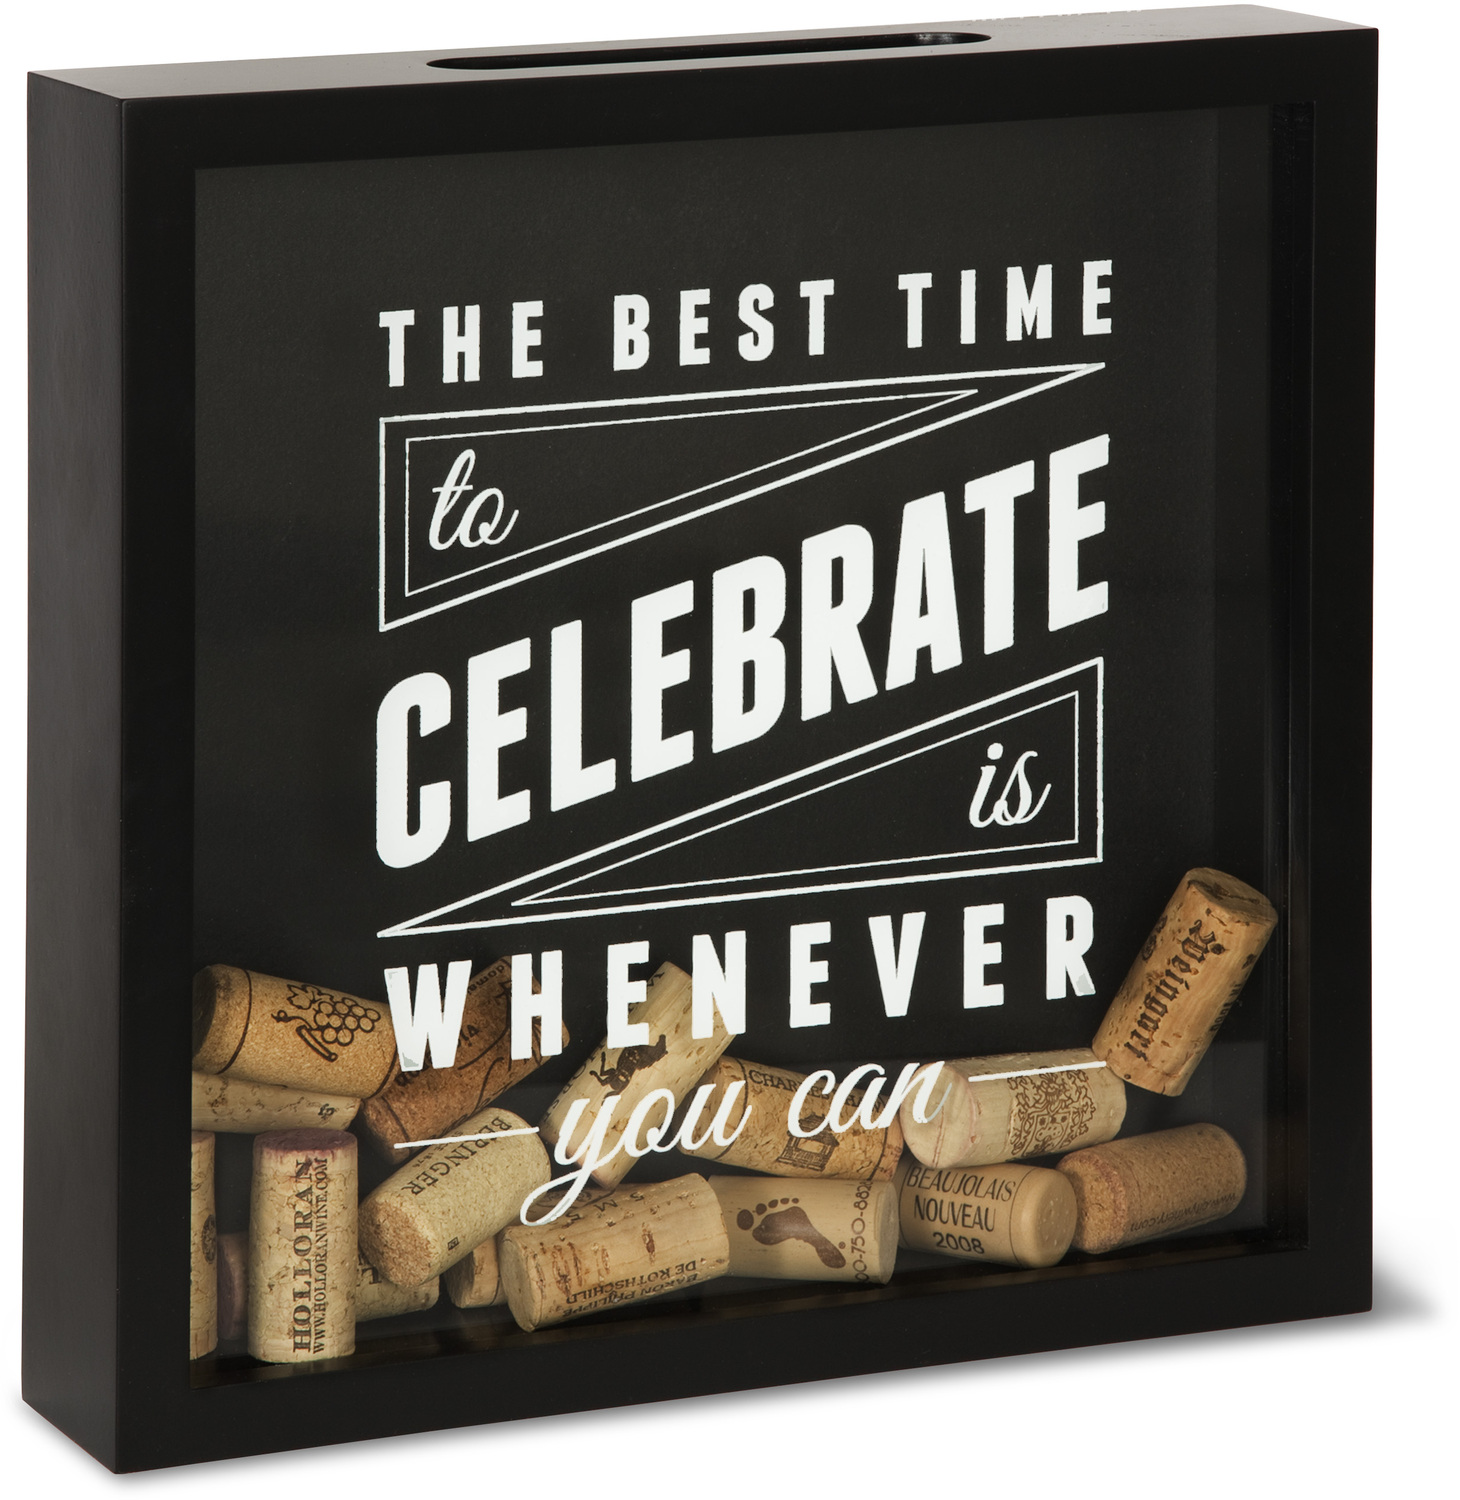 "Celebrate by Wine All The Time - Celebrate - 11"" x 11"" x 2.25"" Wood Cork Holder"